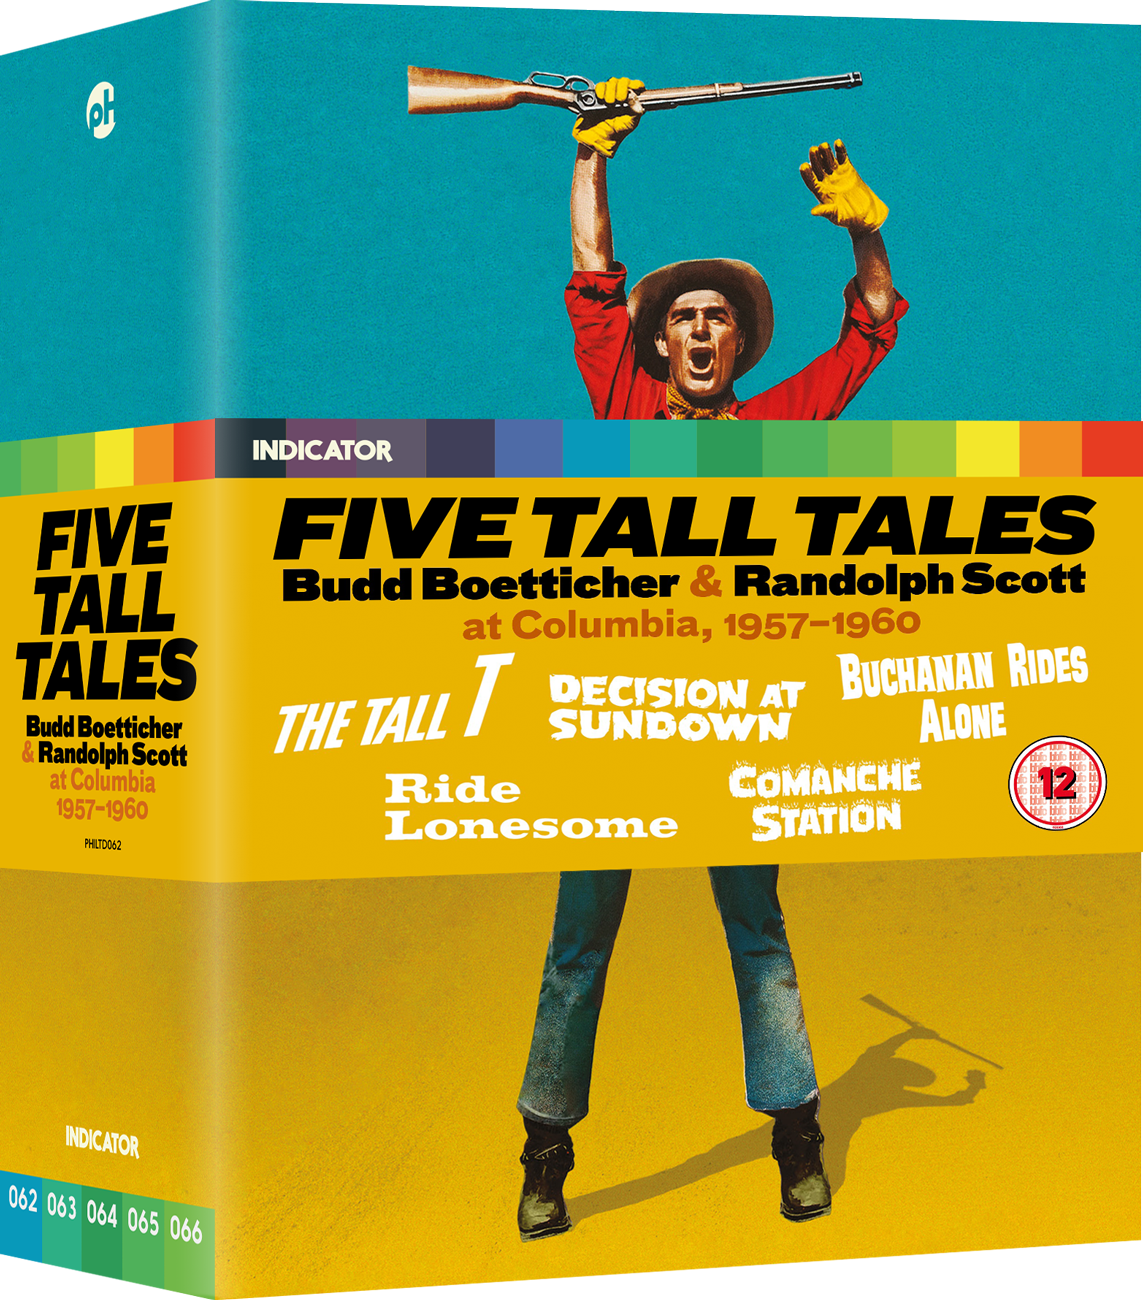 FIVE TALL TALES: Budd Boetticher & Randolph Scott at Columbia, 1957-1960 - LE